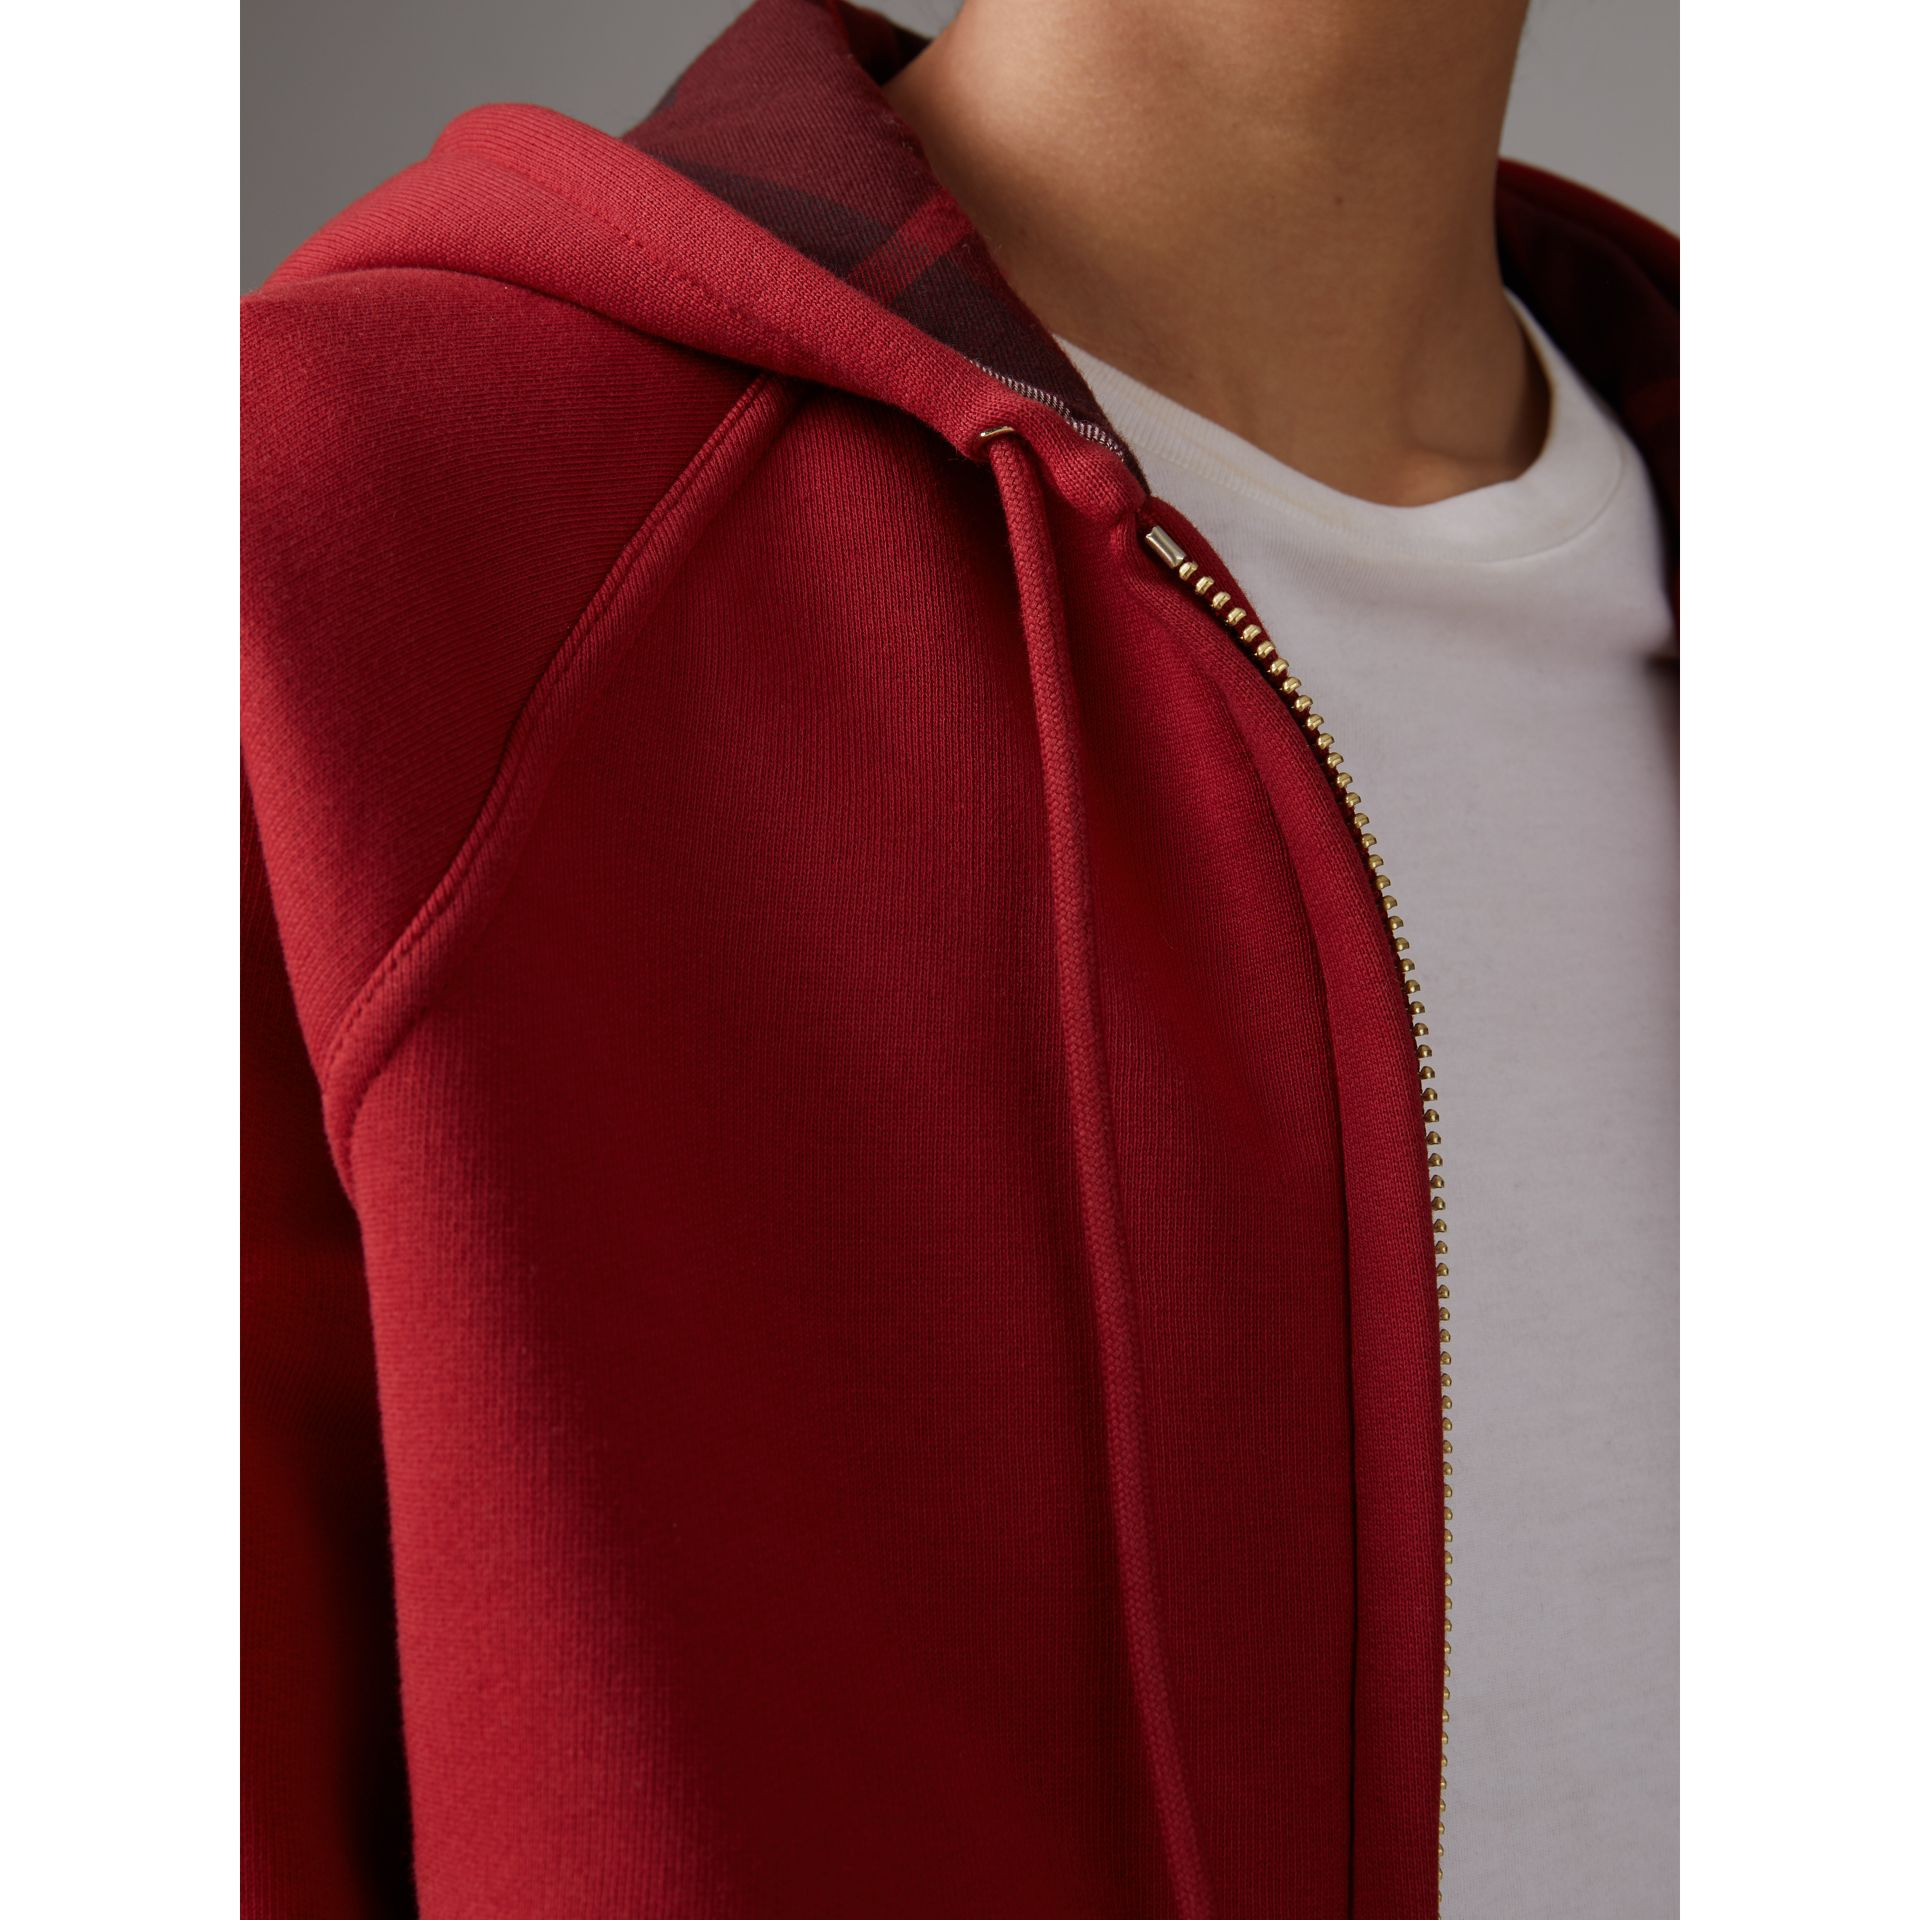 Hooded Zip-front Cotton Blend Sweatshirt in Parade Red - Women | Burberry Hong Kong - gallery image 1